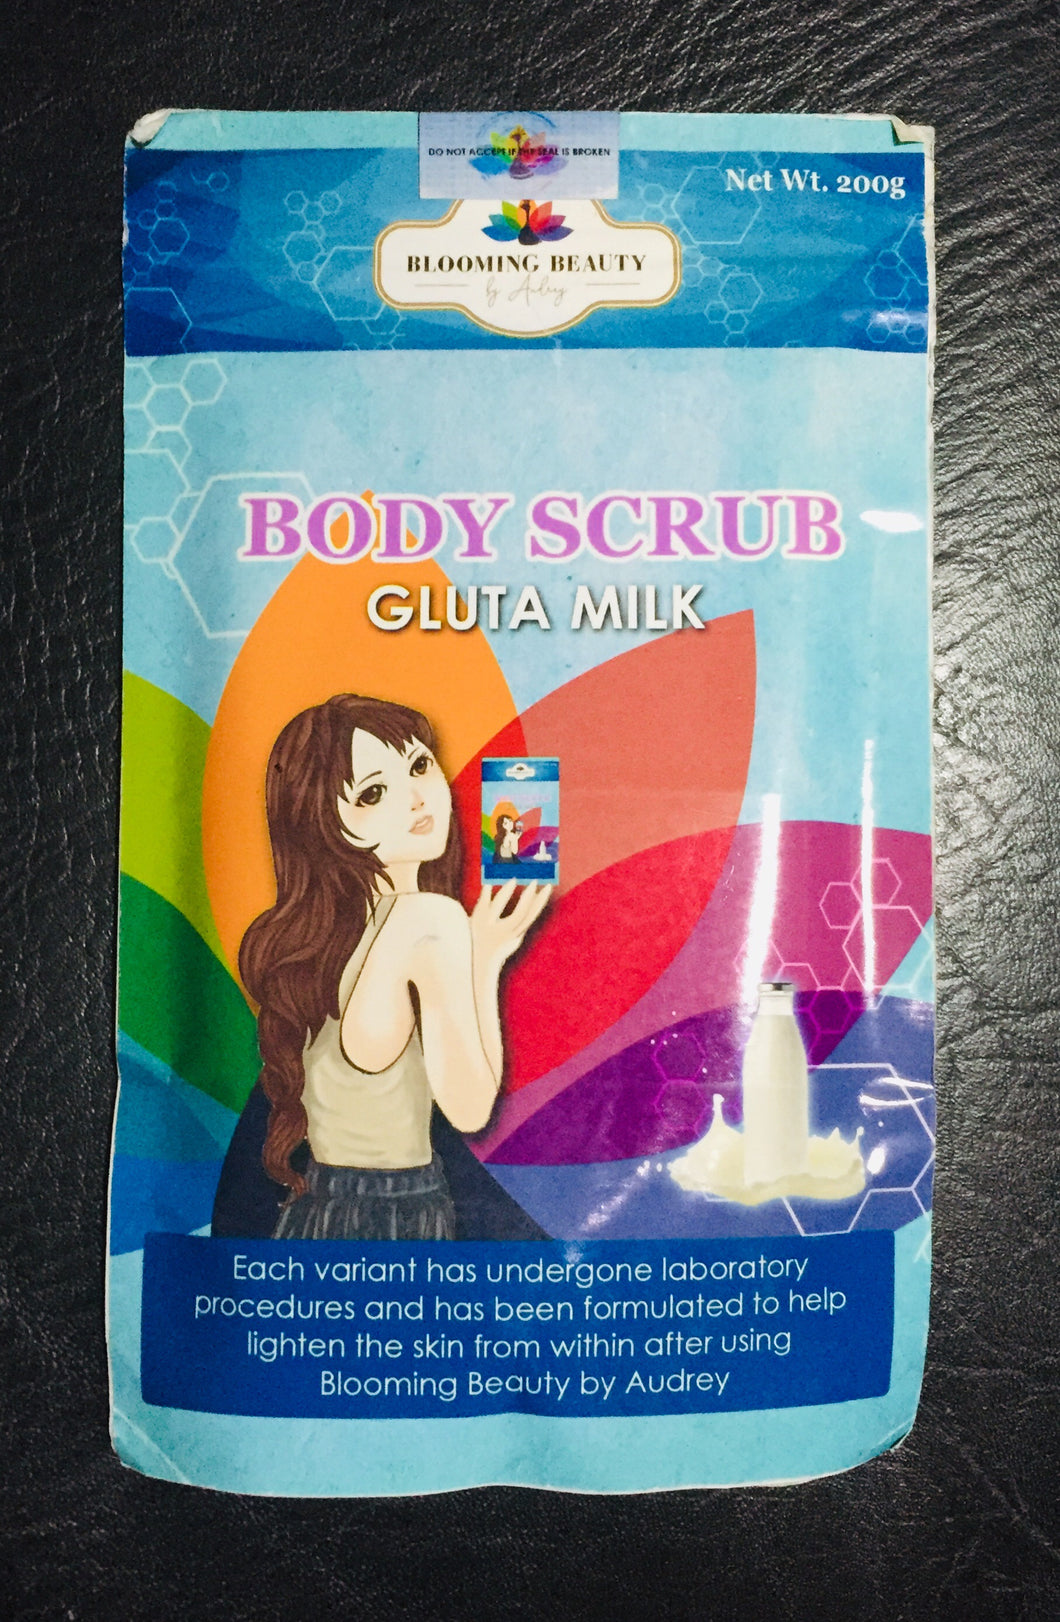 Blooming Beauty Body Scrub Gluta Milk 200g